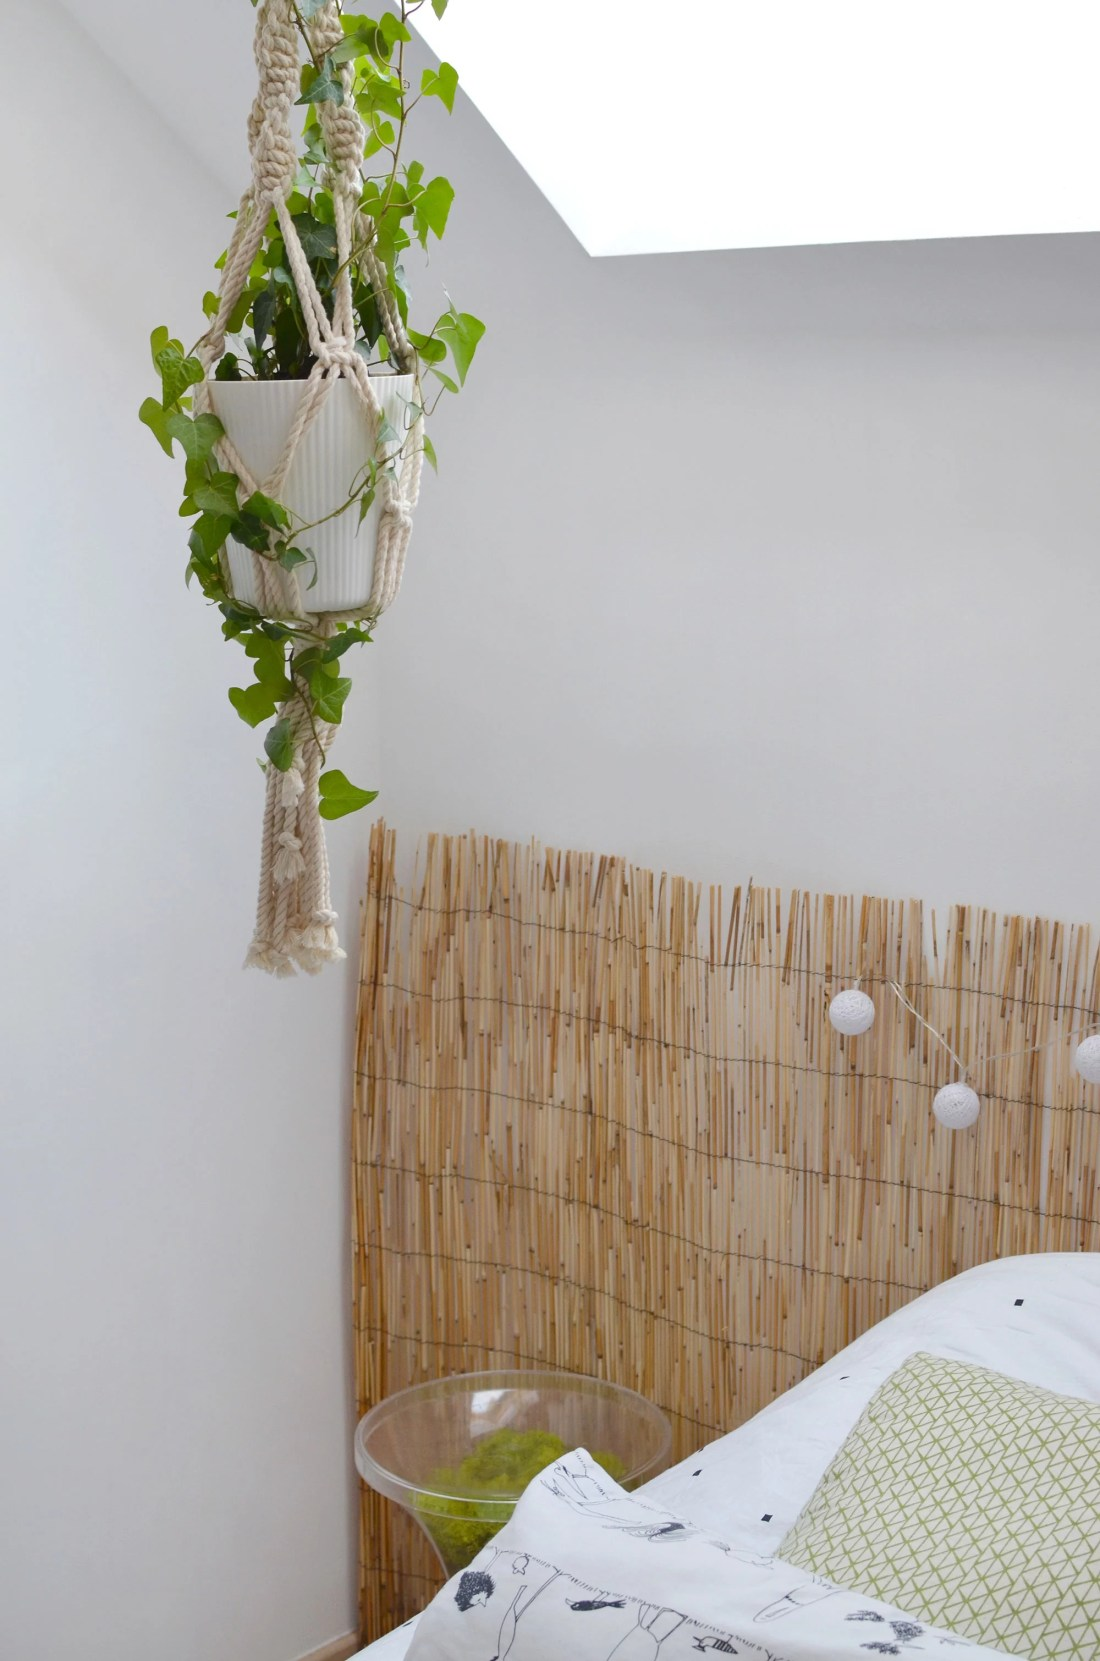 jungle-home-room-plante-macrame